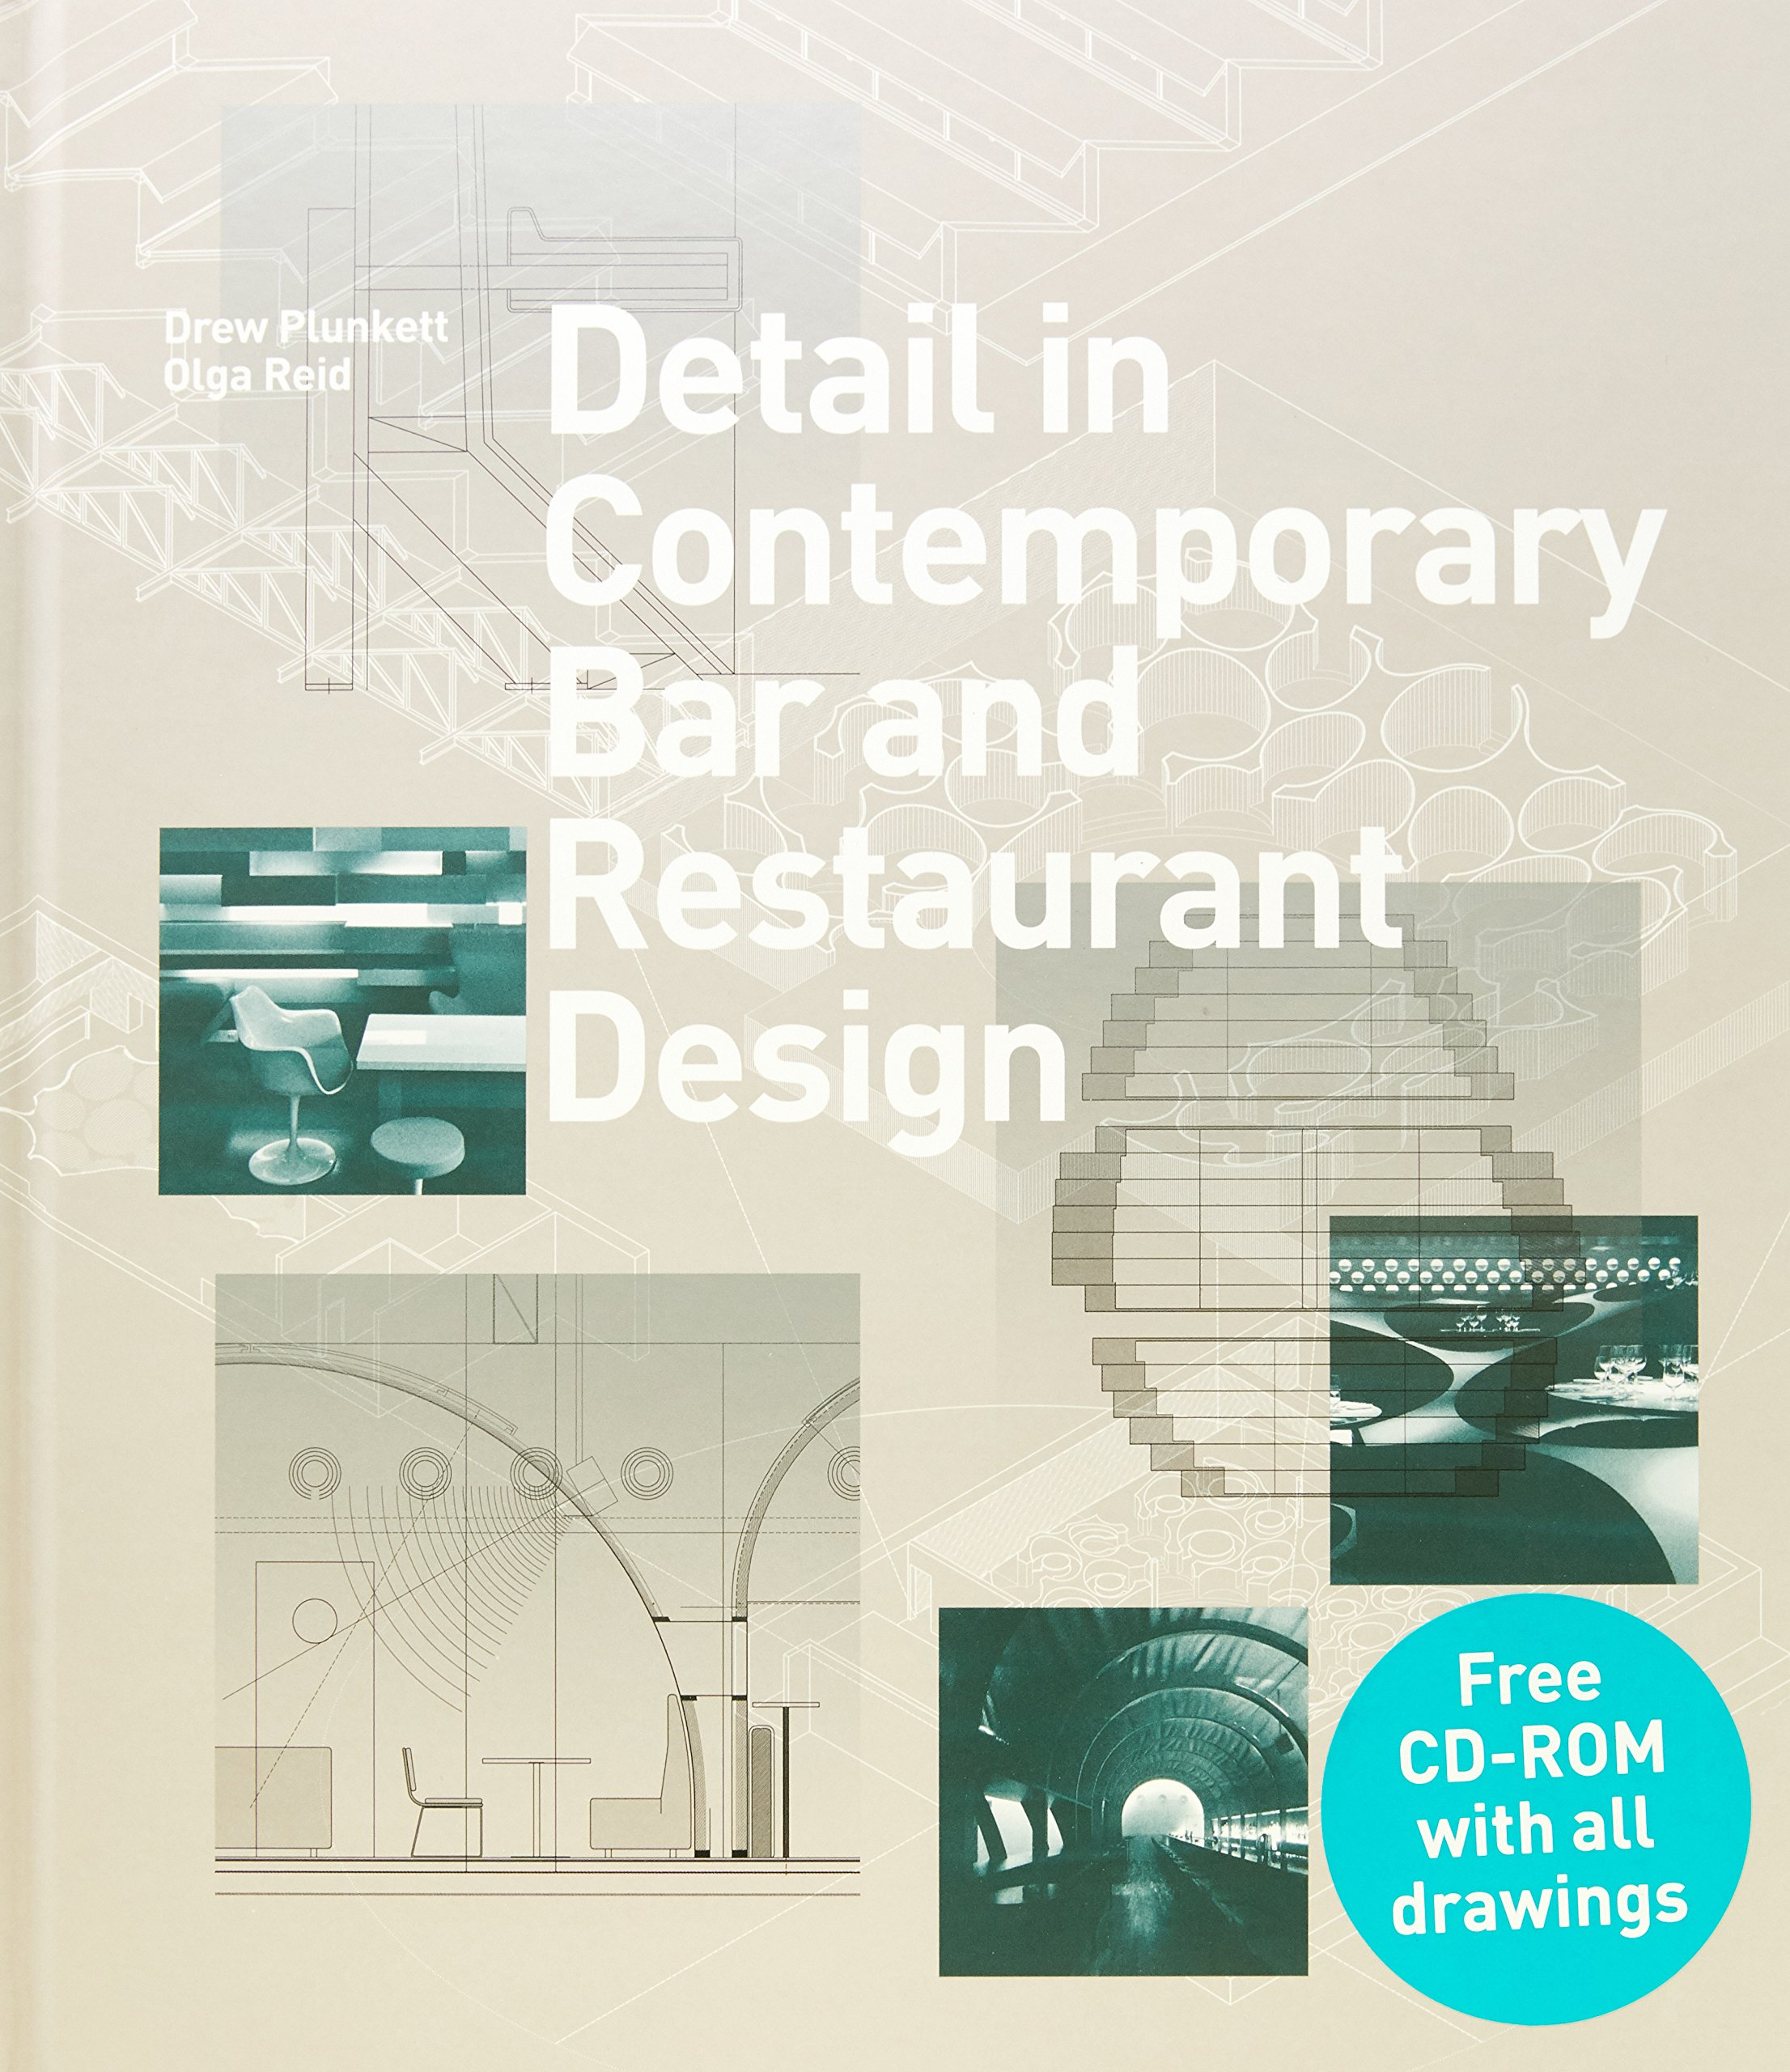 Detail in Contemporary Bar and Restaurant Design (Detailing